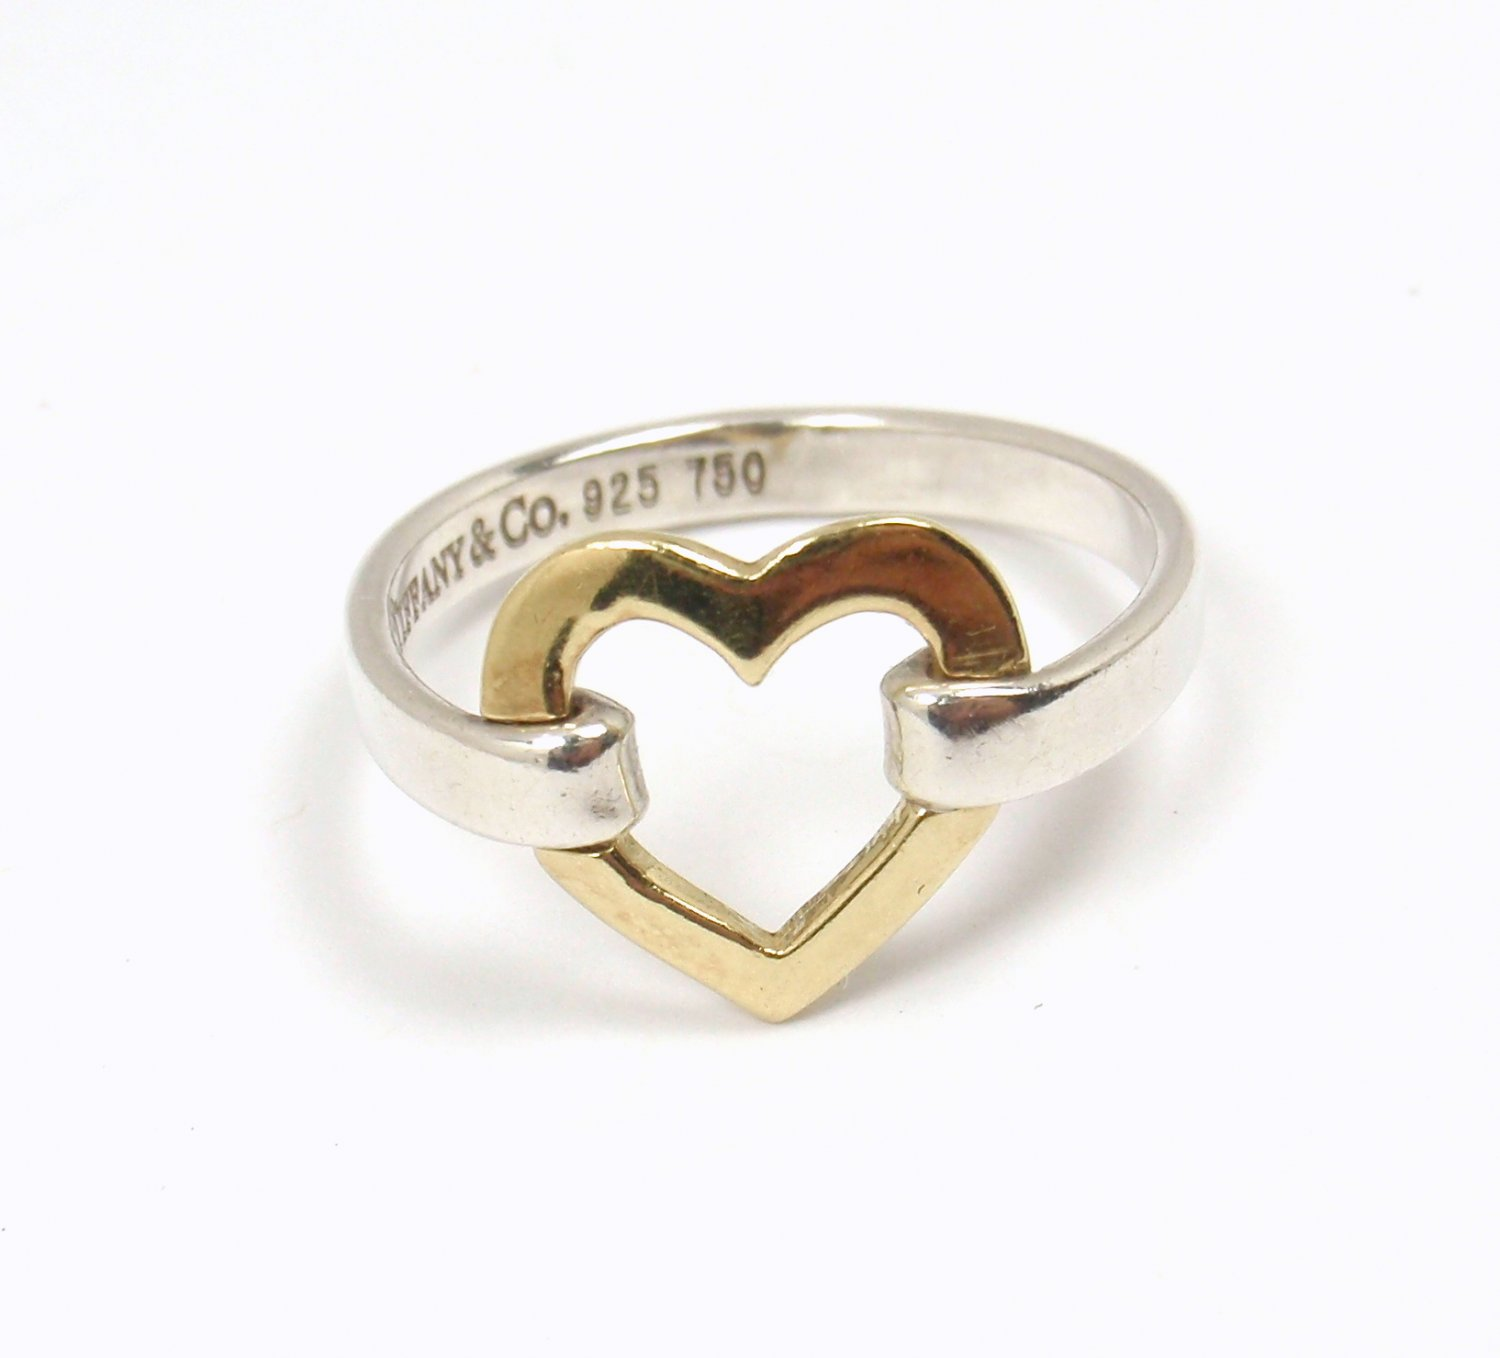 Rare Vintage Tiffany & Co Sterling Silver 18K Gold Open Heart Ring Size 6.25